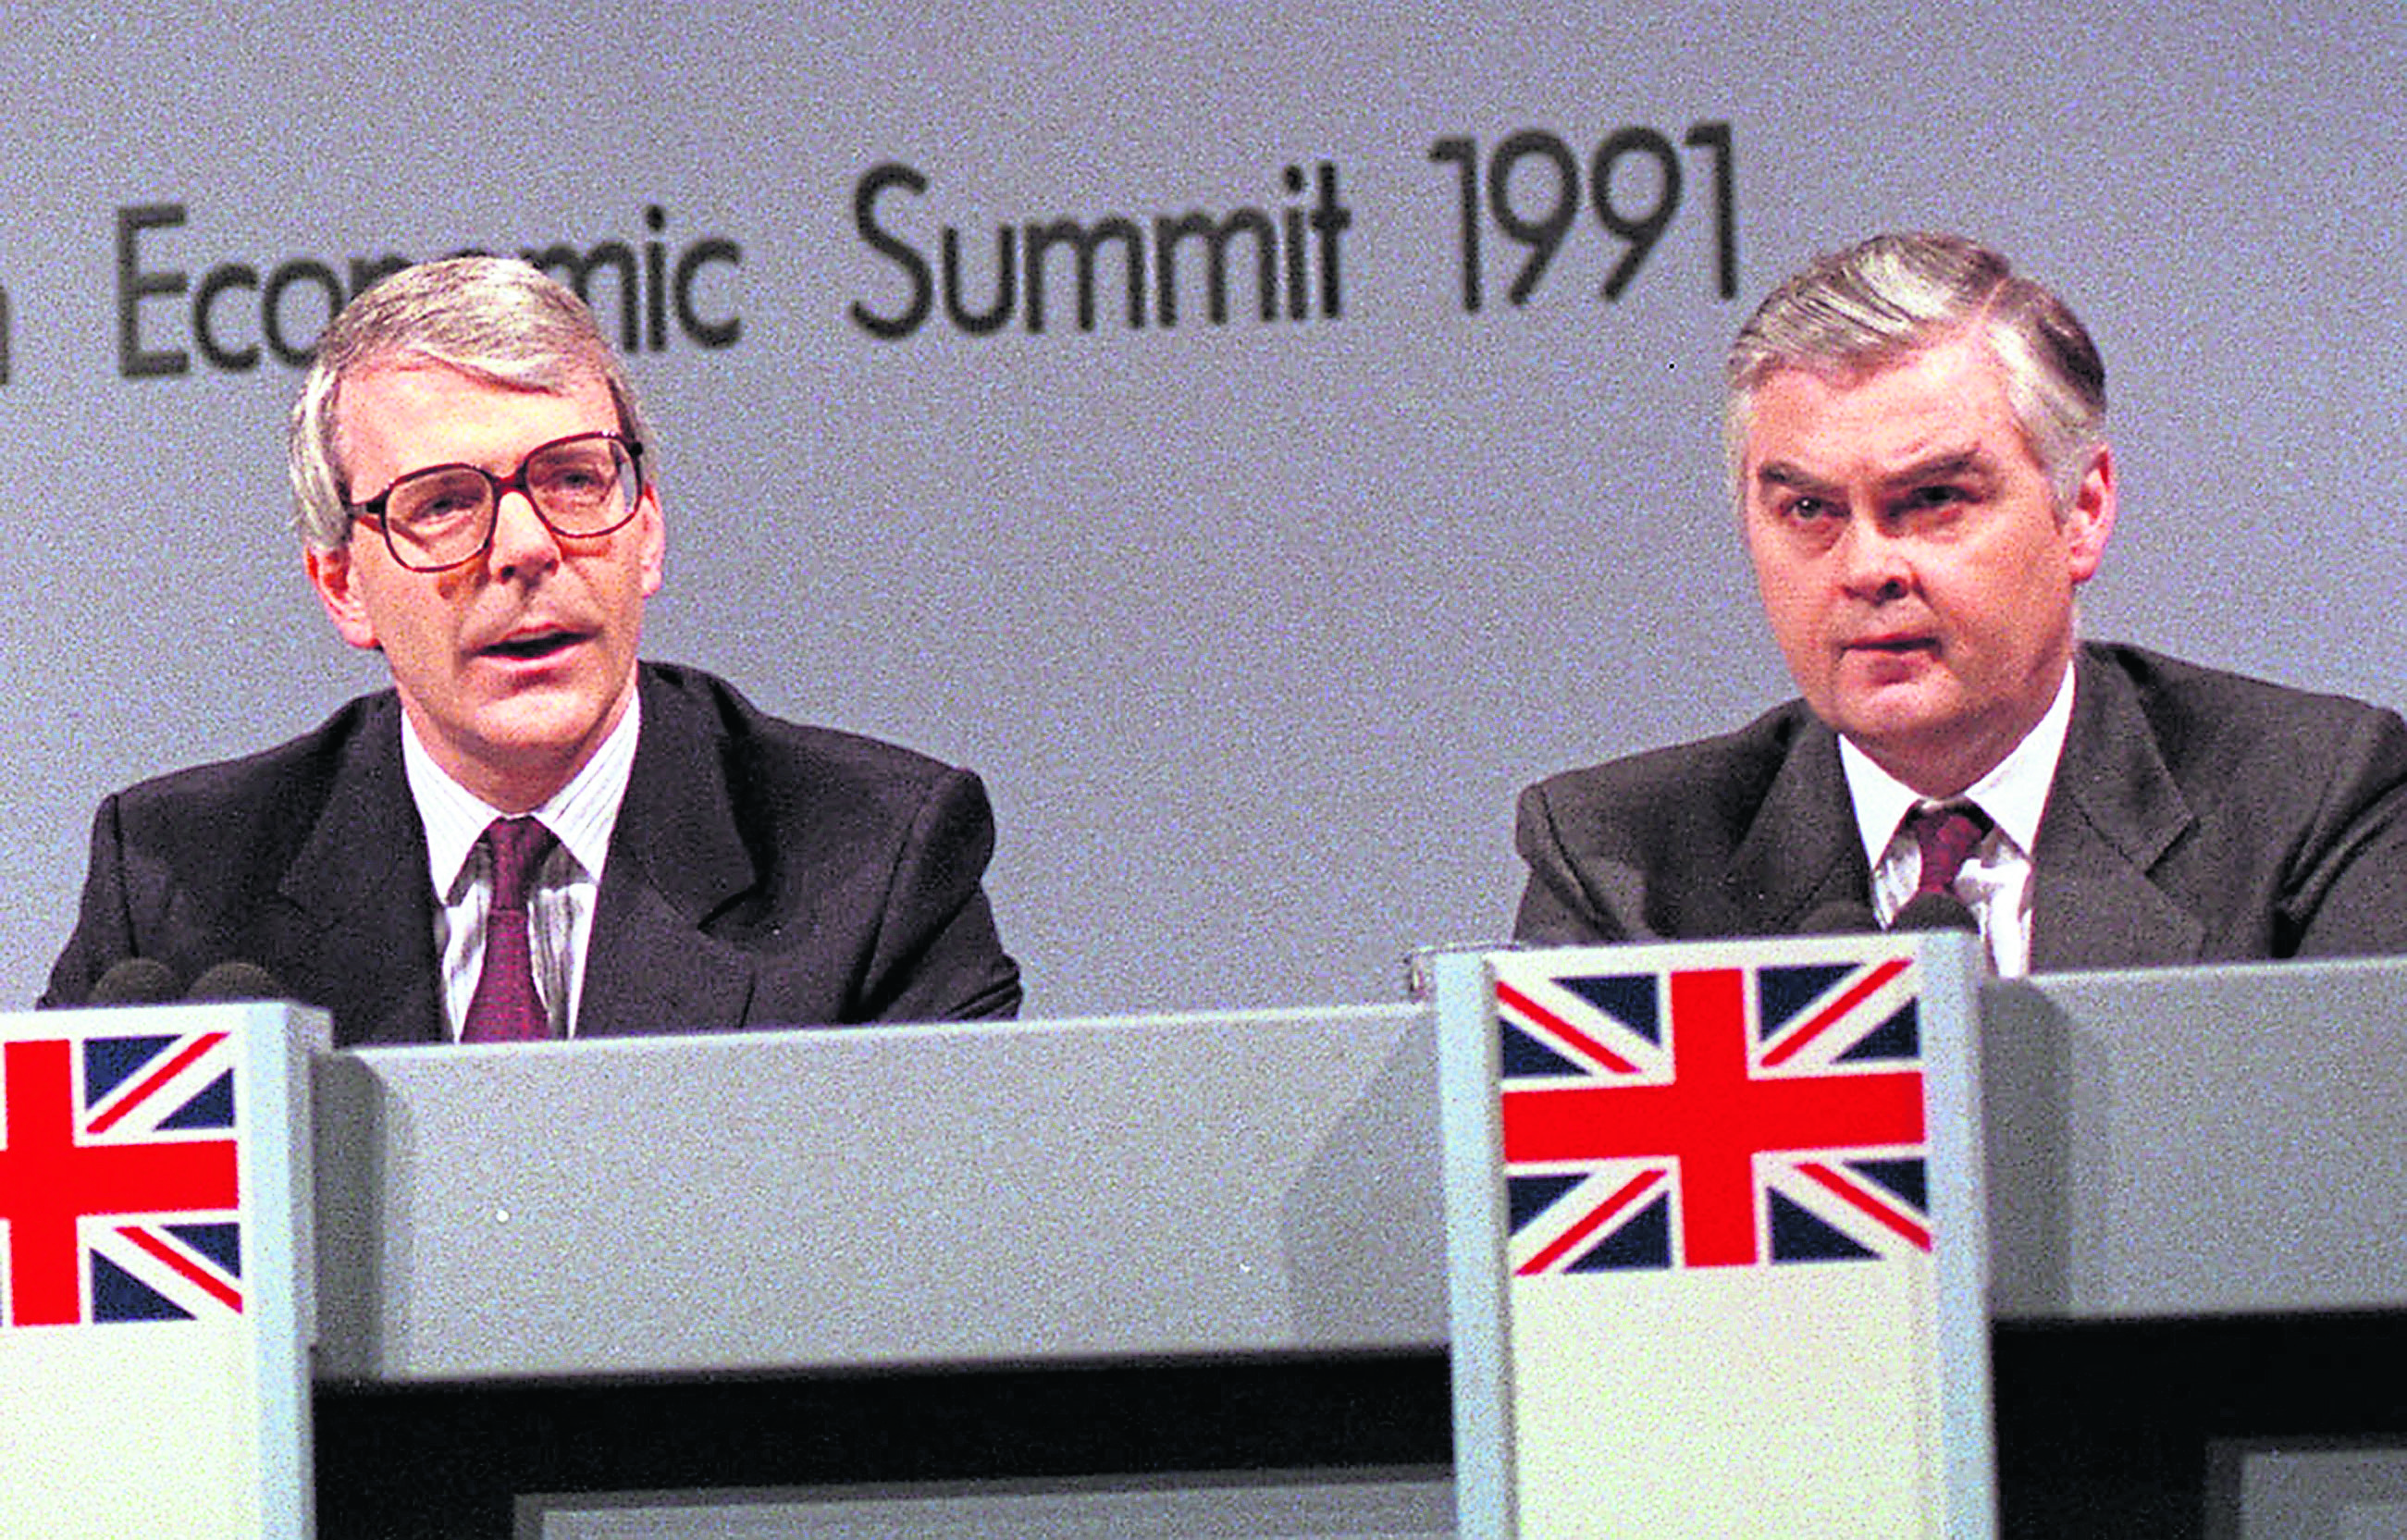 The proposal to abolish the Petroleum Revenue Tax was discussed by Prime  Minister John Major, left, and Chancellor Norman Lamont, right